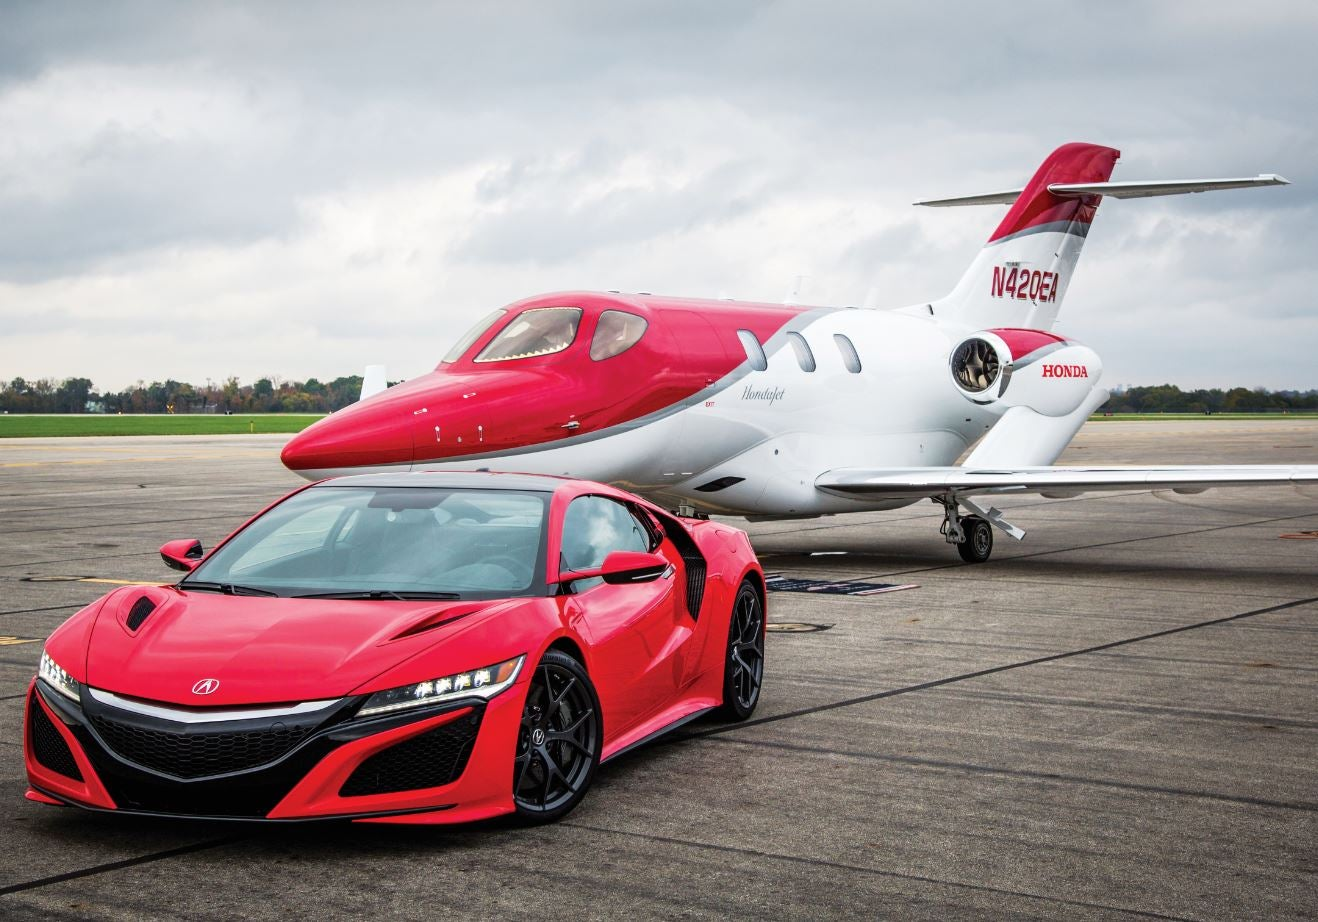 Acura and HondaJet Team Up for High-Octane Experience | Elite Traveler